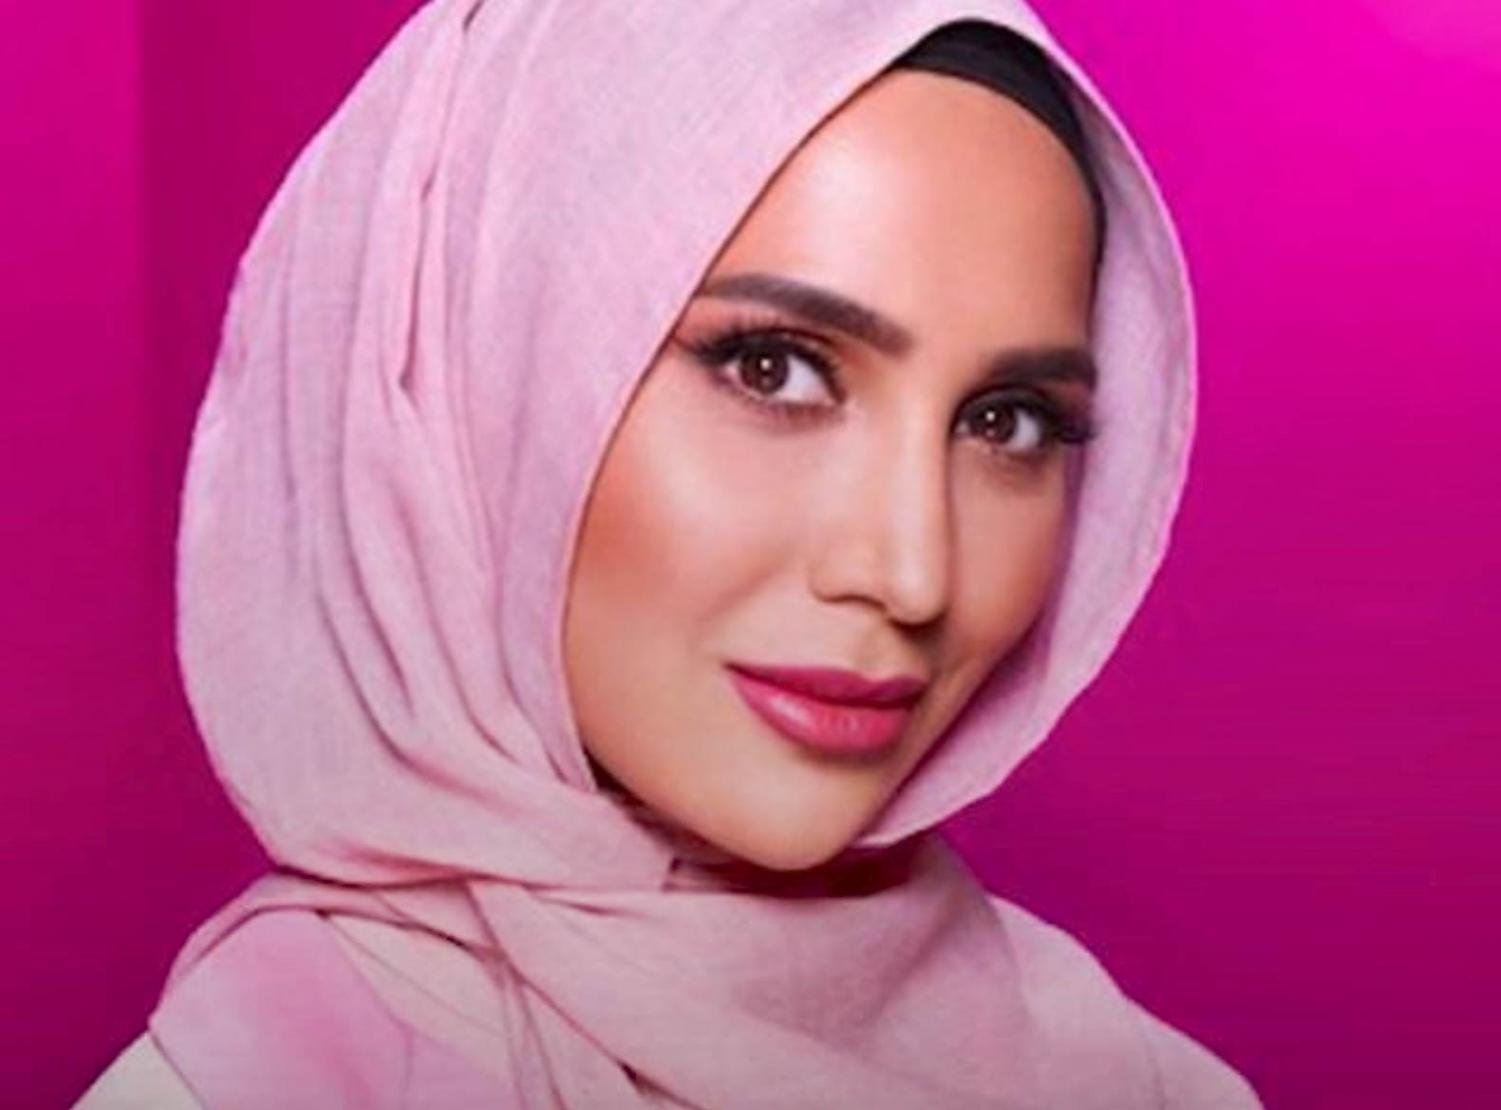 U.K.-based beauty blogger Amena Khan recently became the first hijab-wearing women to be given a major hair campaign. With the beauty industry's apparent rise in inclusive ad campaigns, skeptics wonder if companies are truly concerned about increasing diversity or are just using it as a advertising tactic.